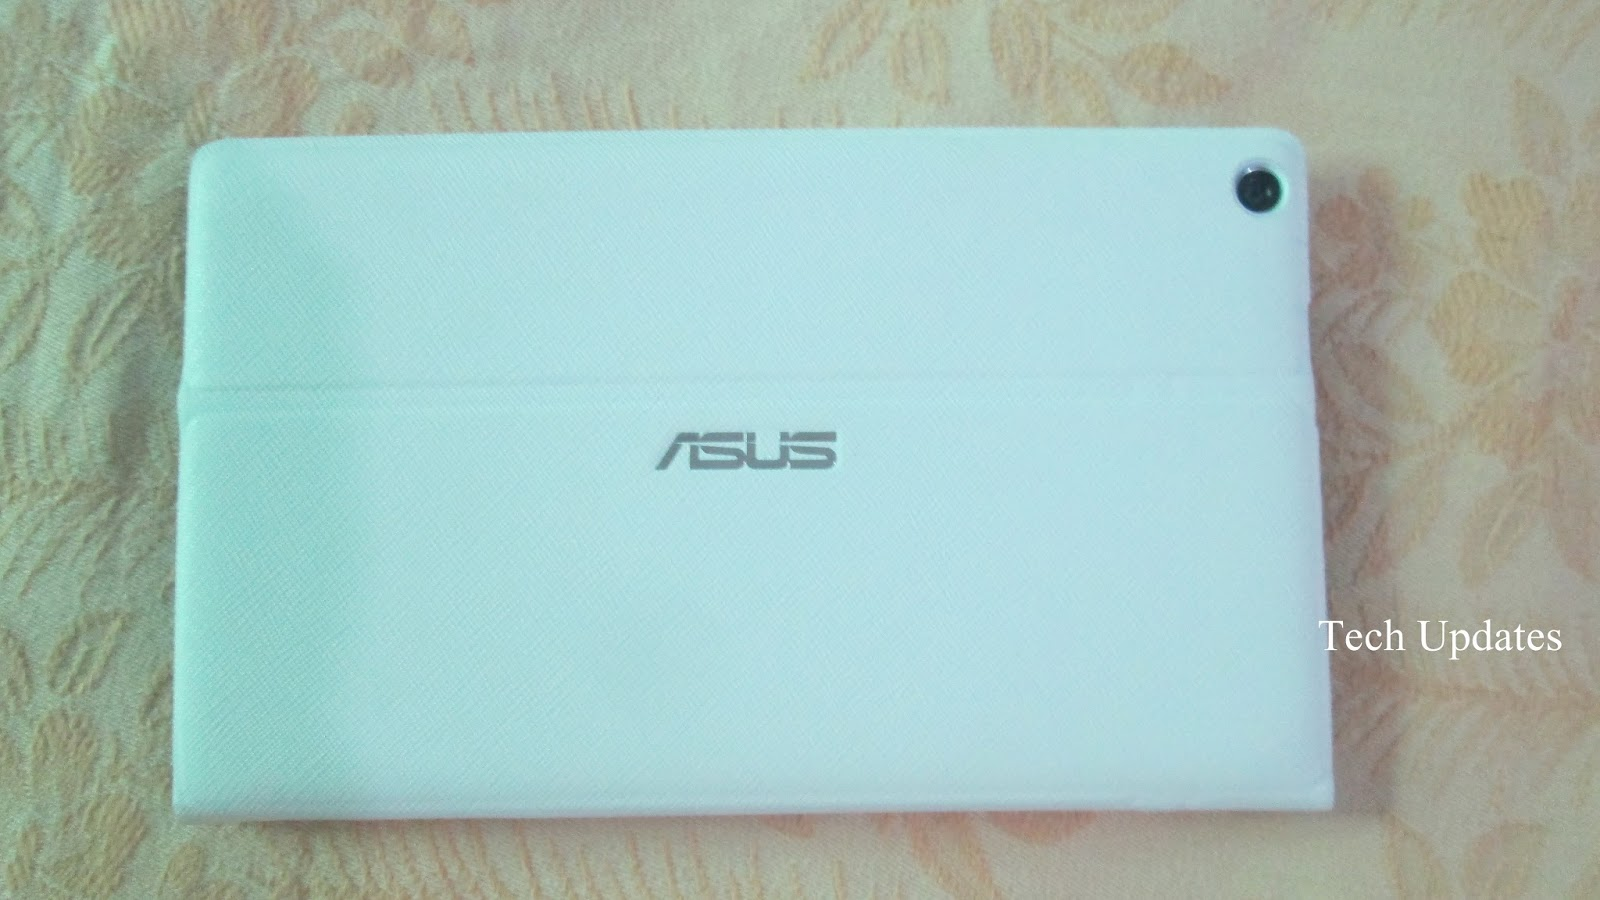 Asus ZenPad 8 0 (Z380KL) Review - Tech Updates